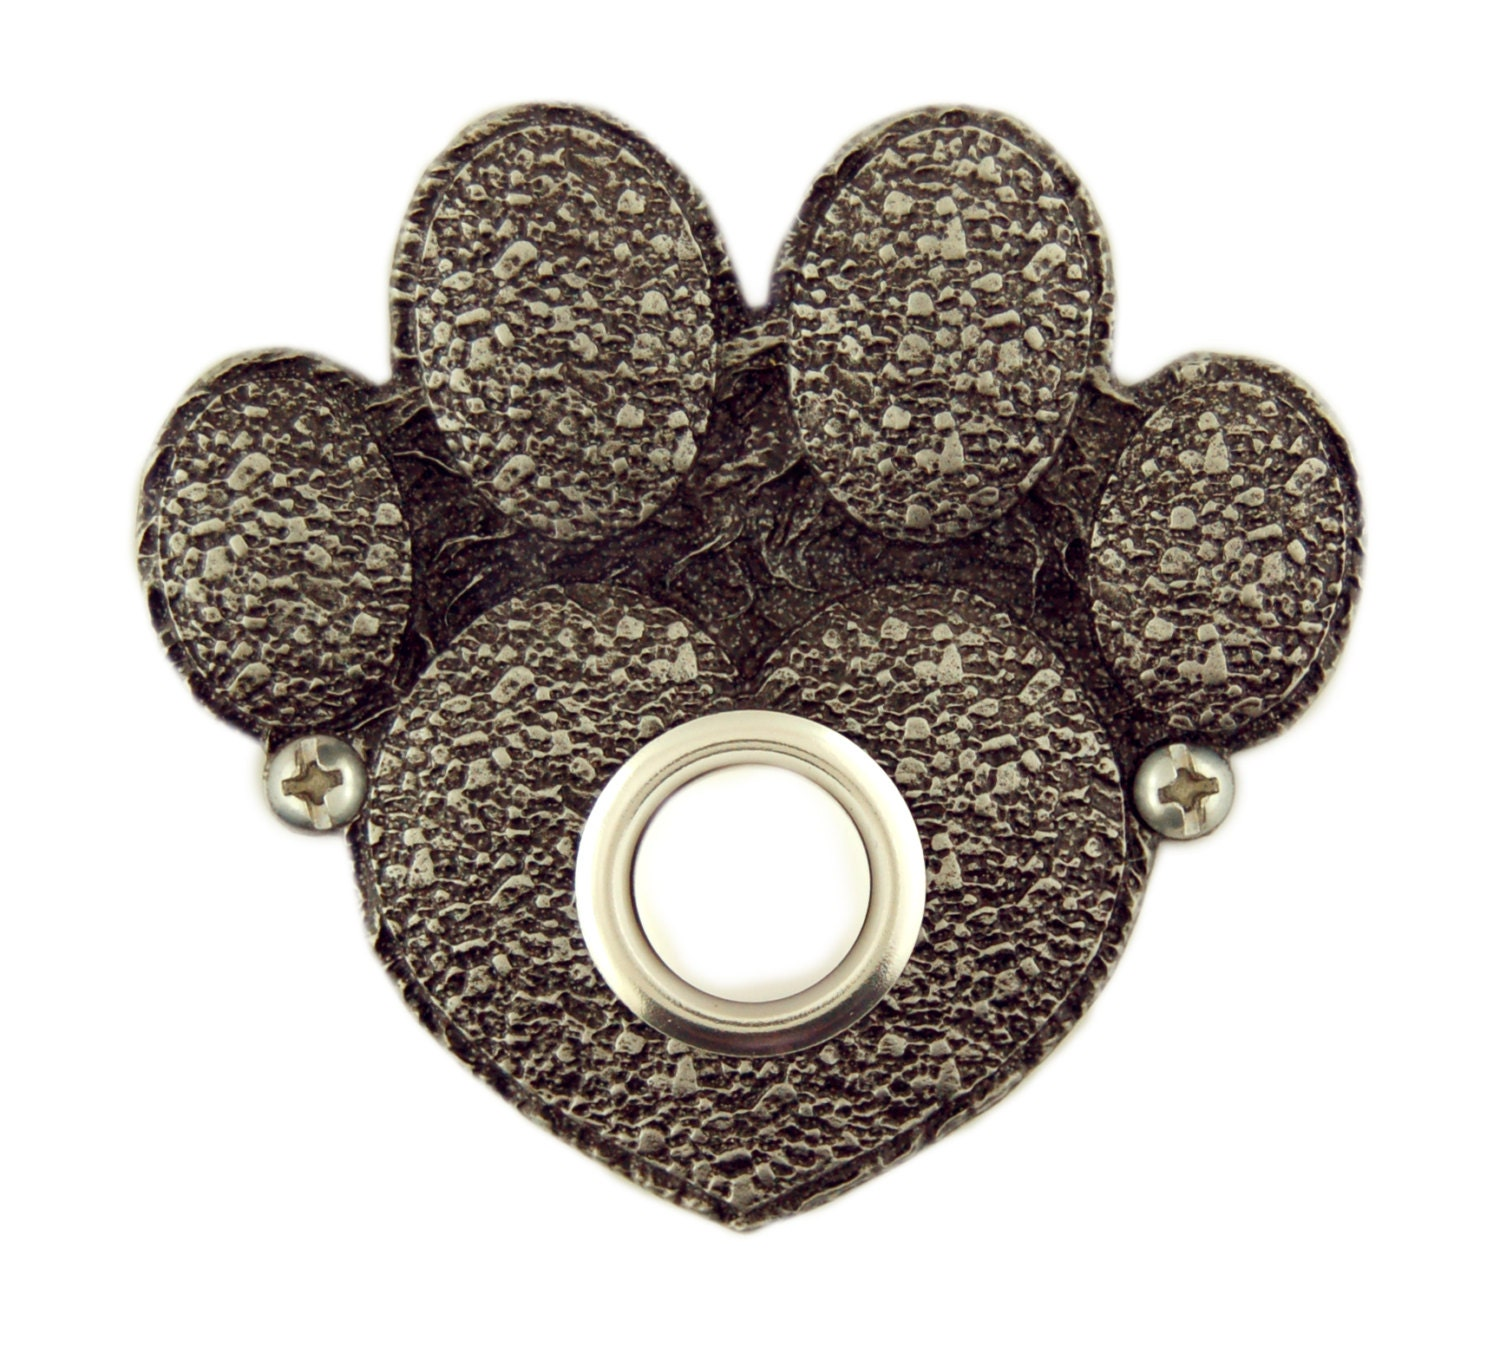 Paw Print Decorative Doorbell Button Cover By